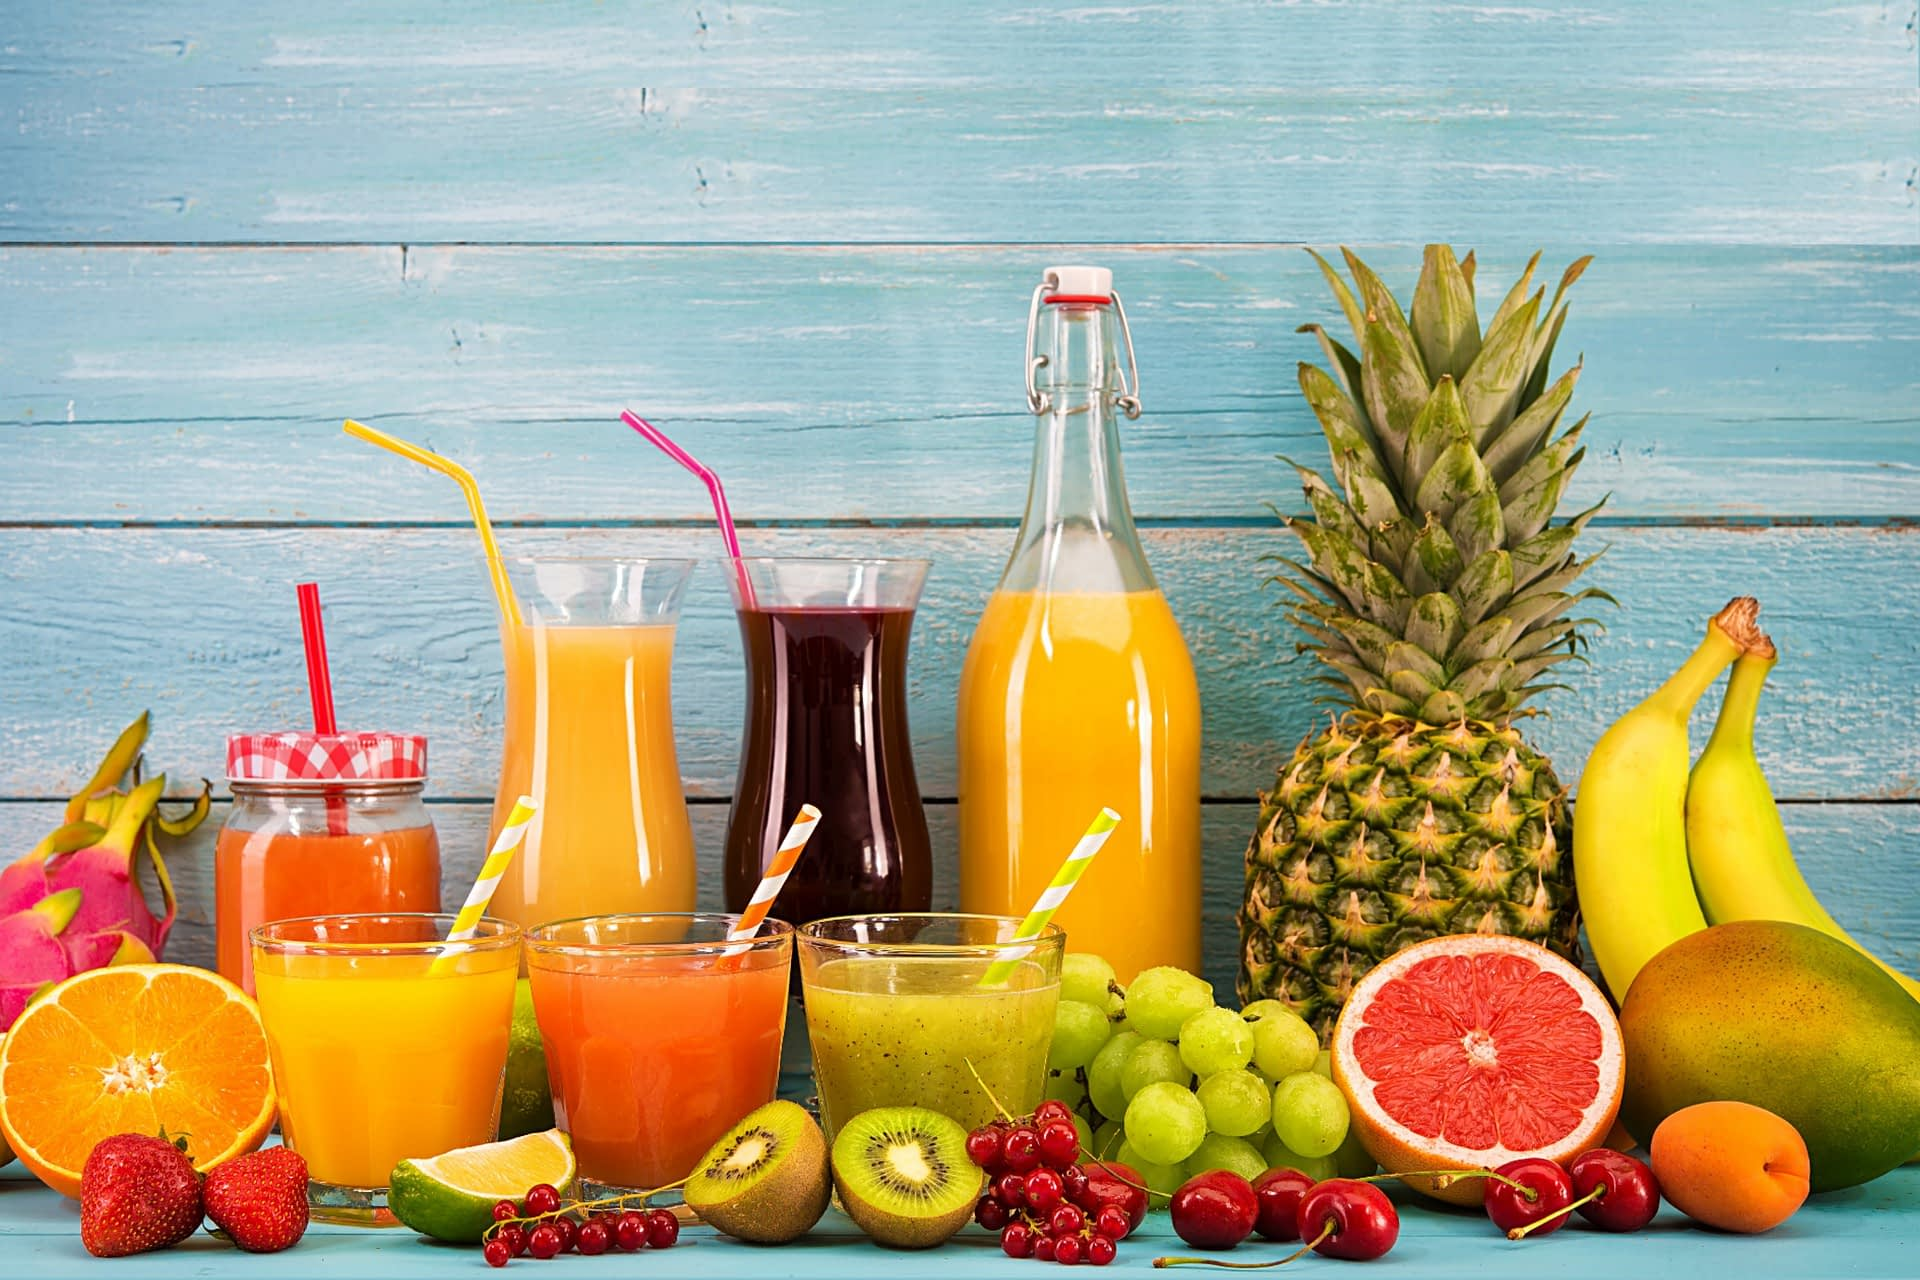 If you don't know what to eat after a juice cleanse, then best check the items listed below.